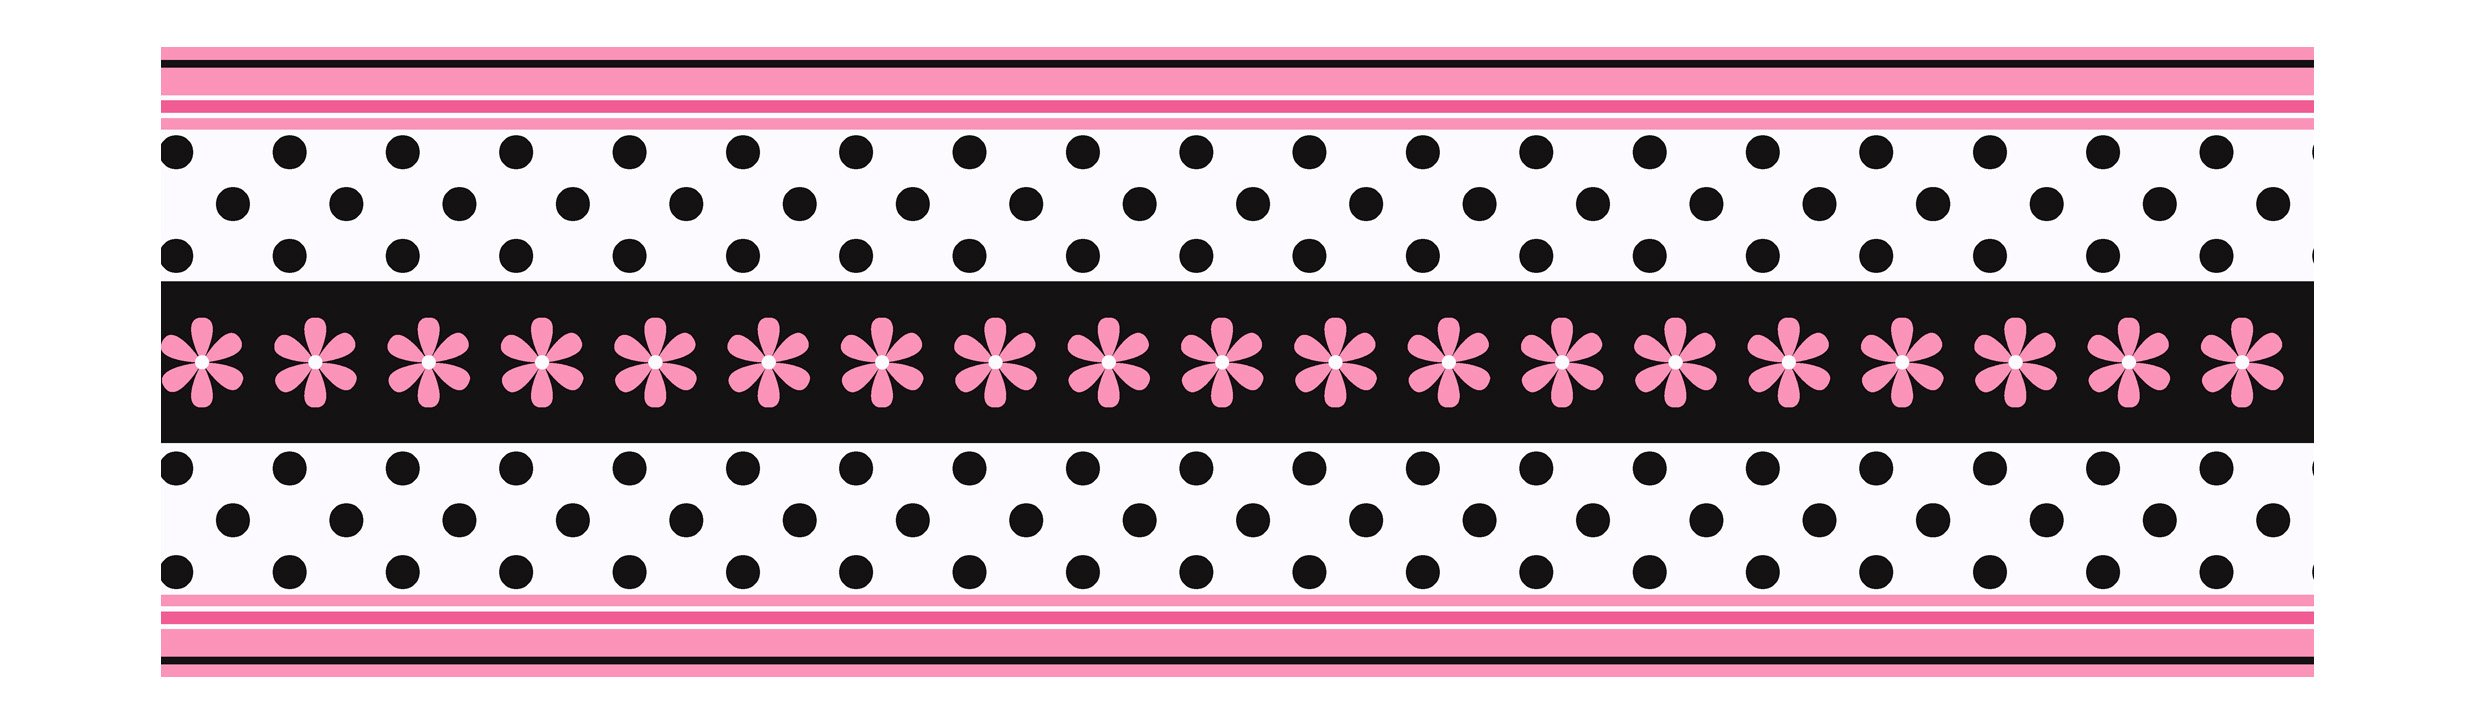 York Wallcoverings Candice Olson Kids CK7719B Daisy Ribbon Border, Pink/Black